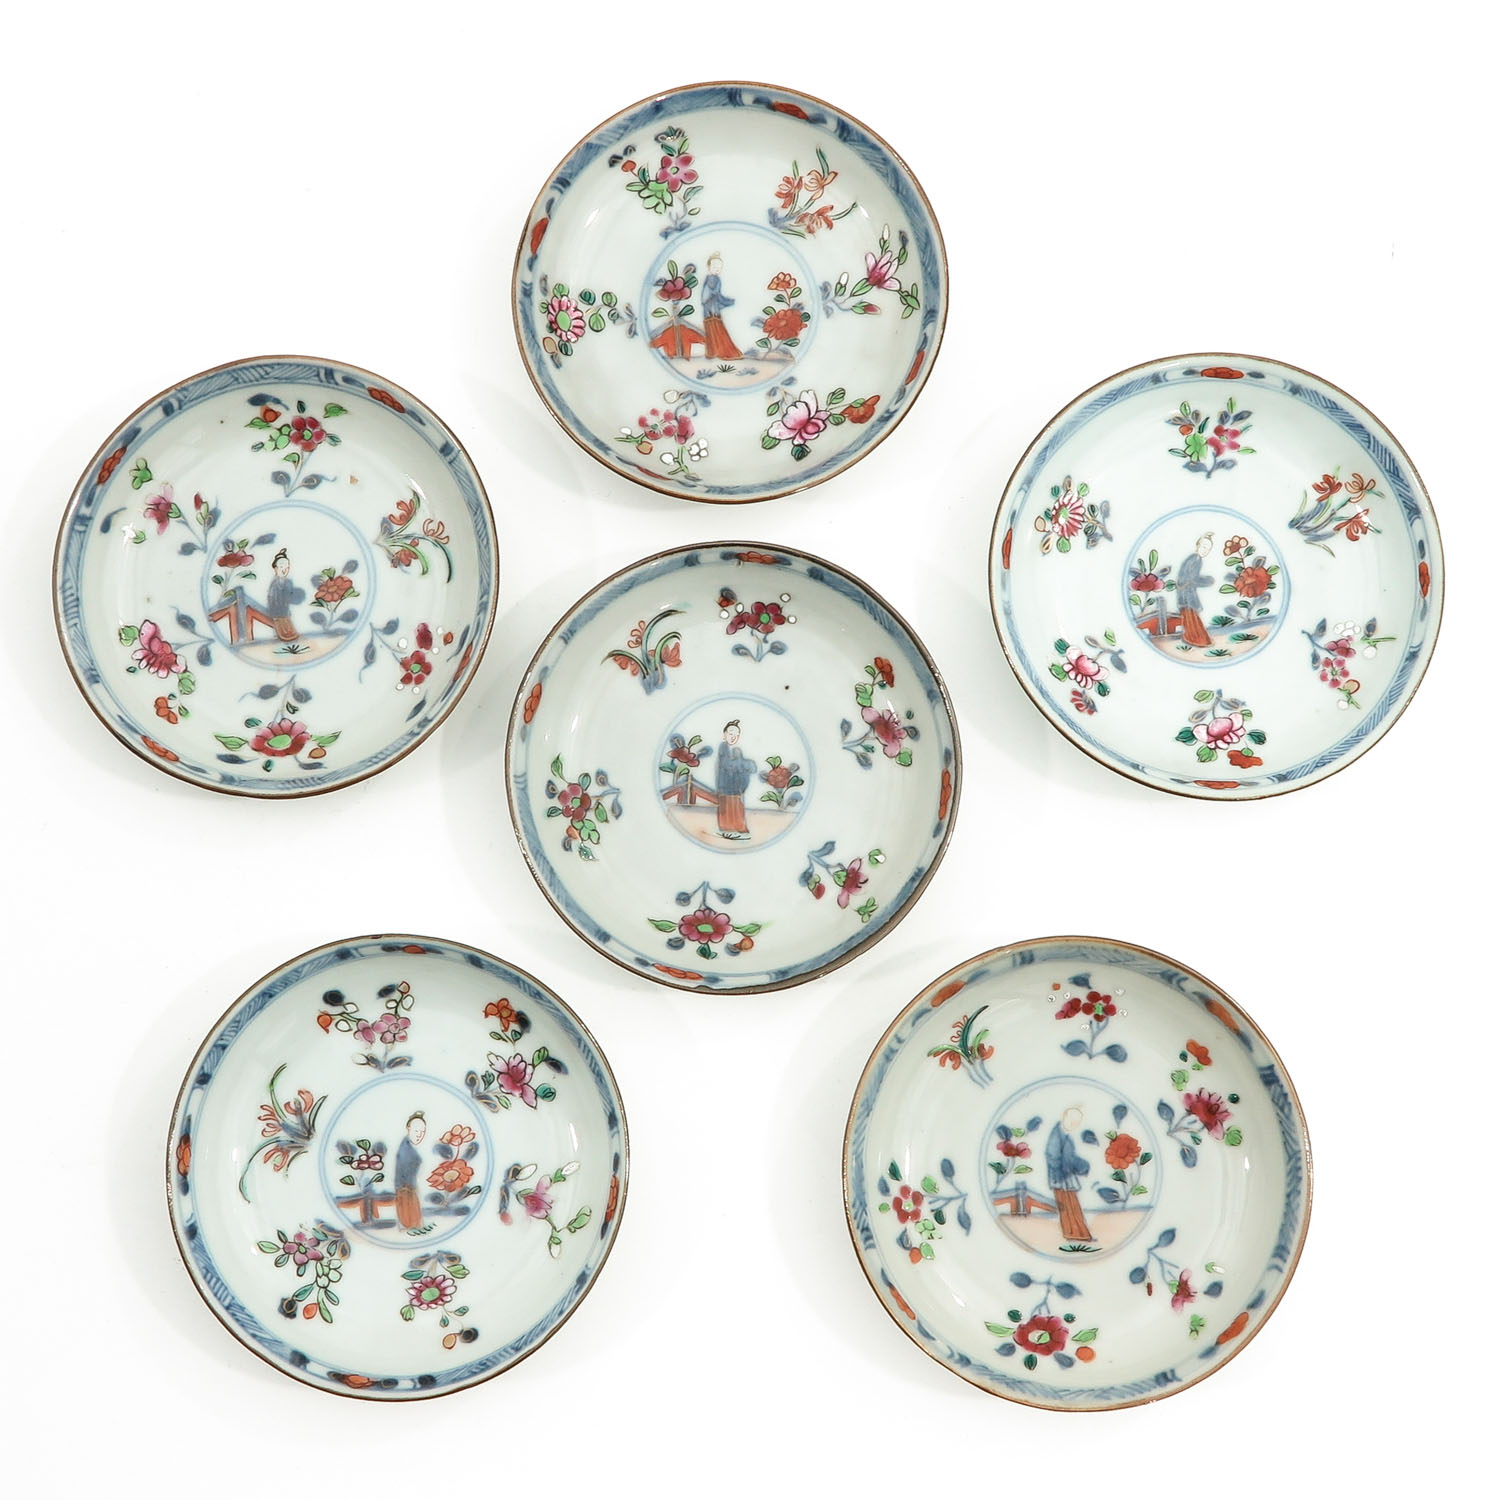 A Set of 6 Cups and Saucers - Image 7 of 10